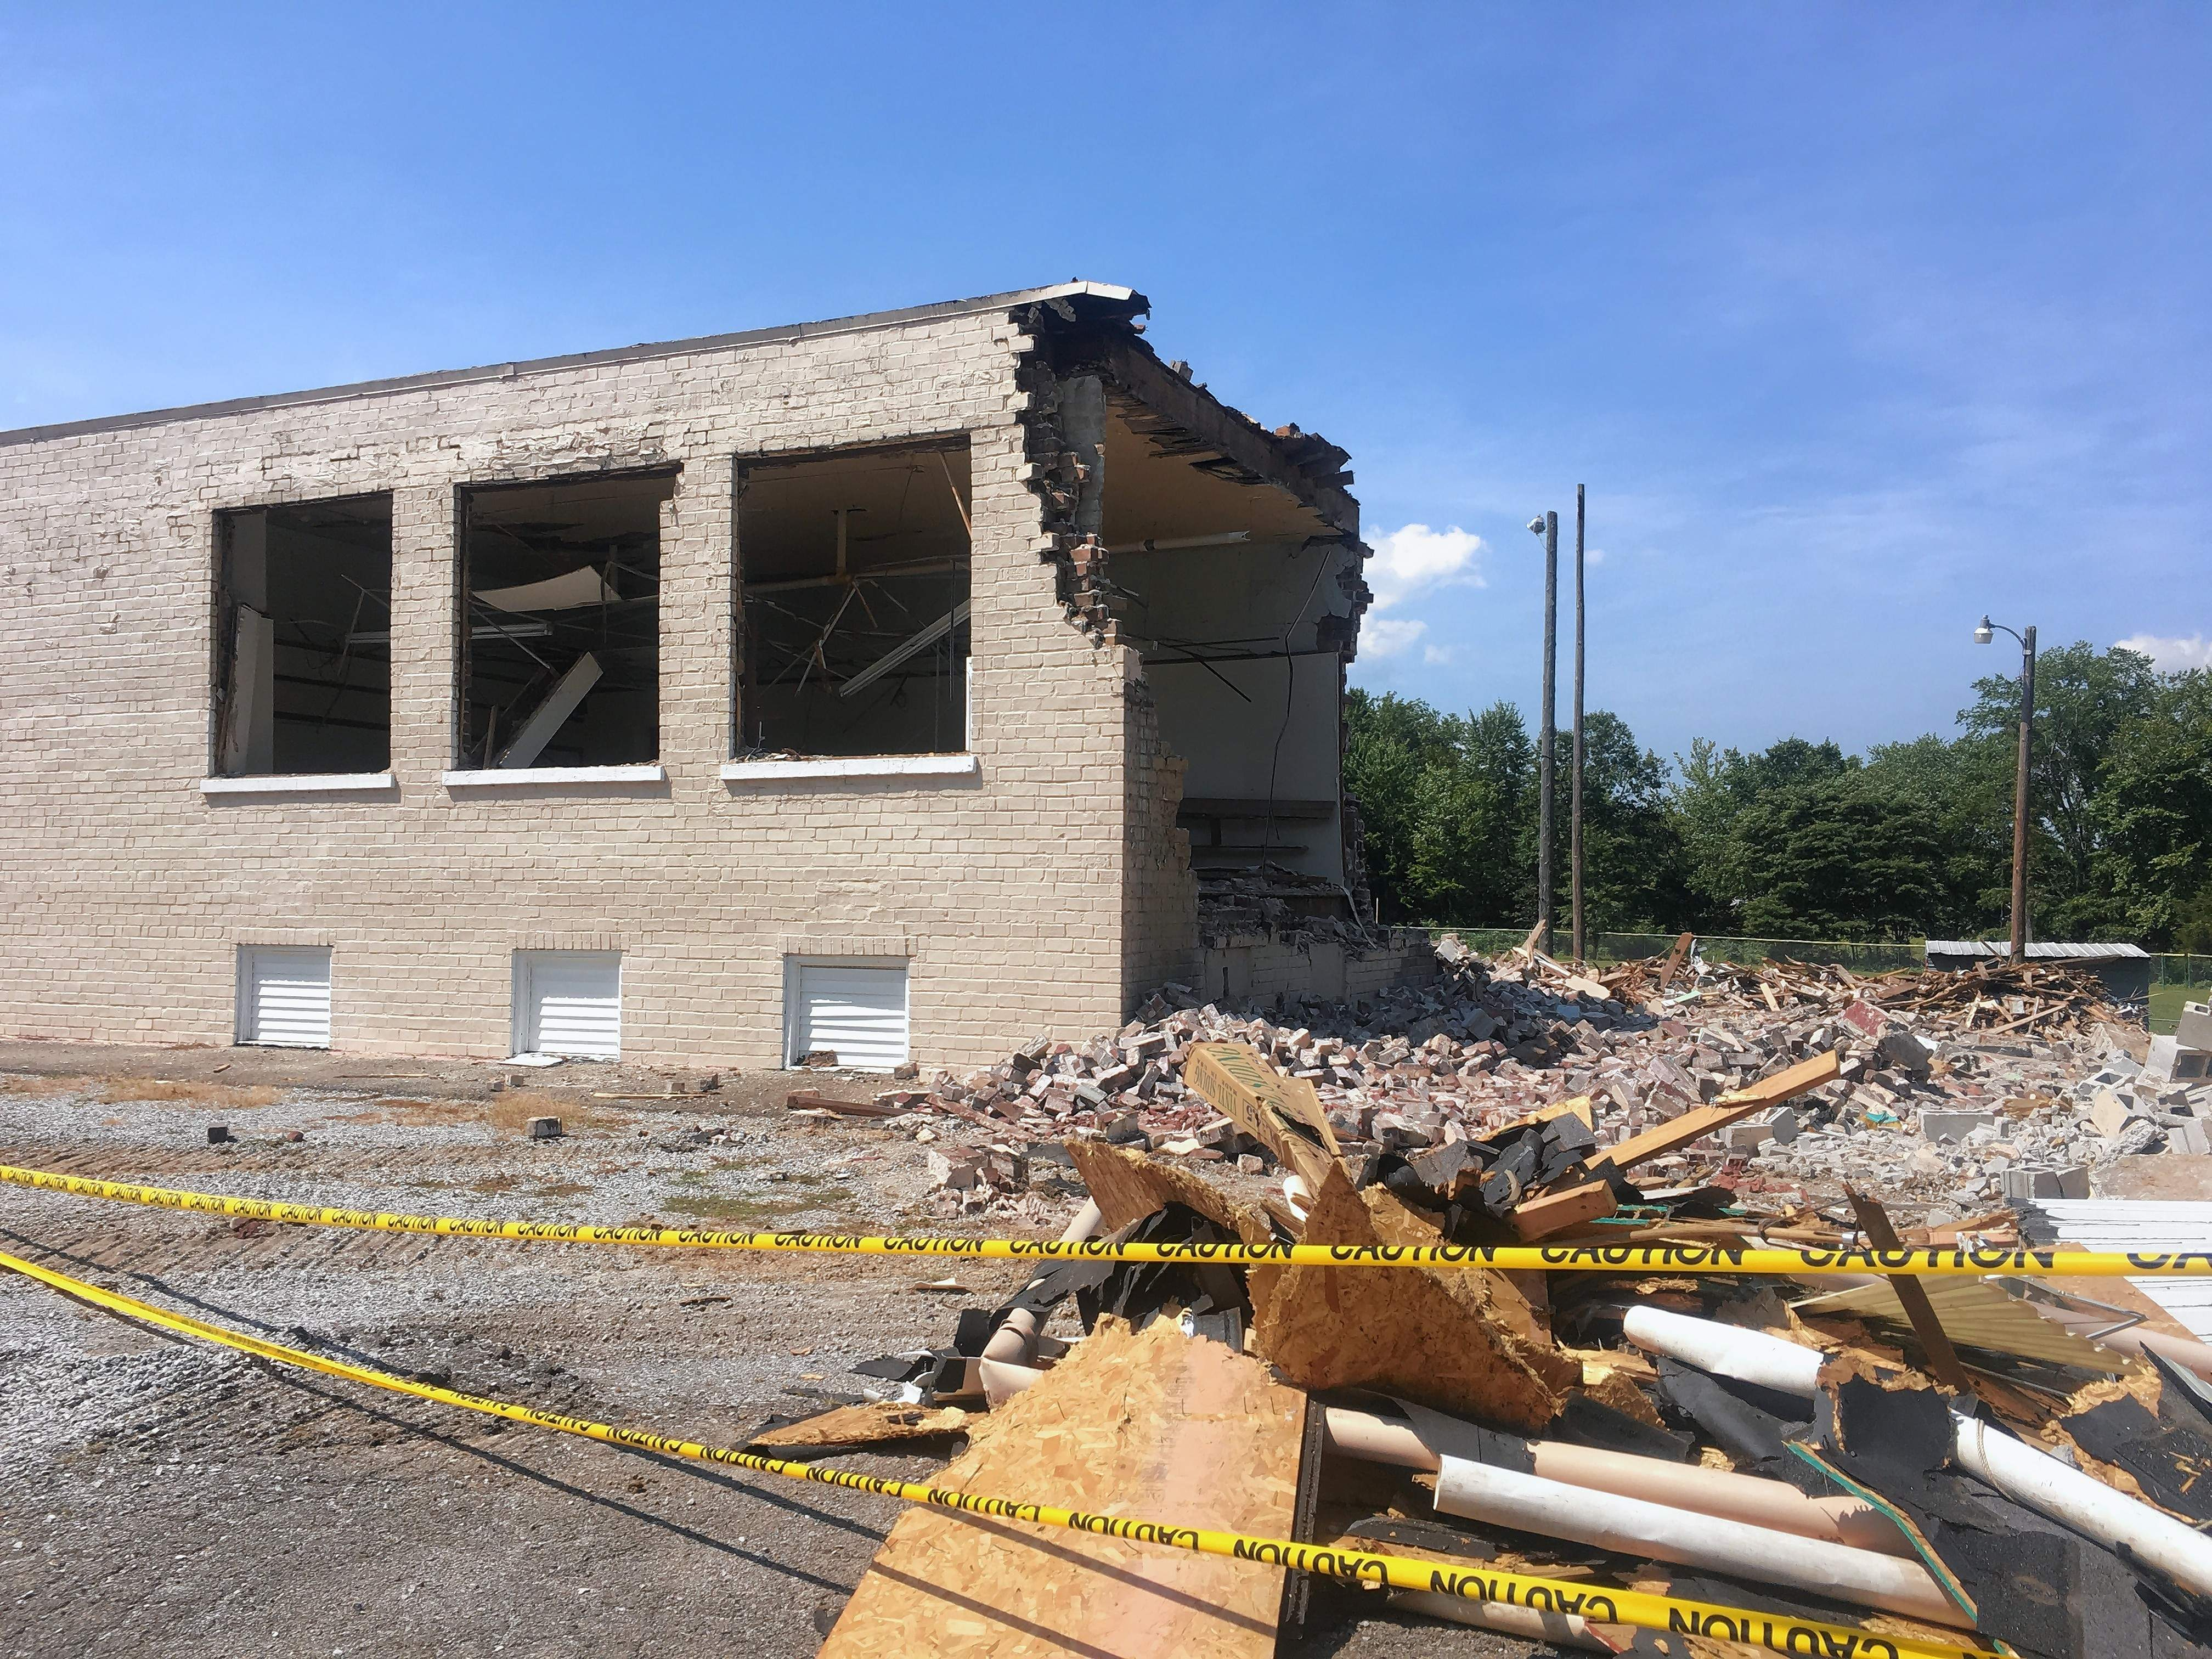 Work proceeded over the weekend in Logan, tearing down the east portion of the former grade school to make way for a new addition that will house a kitchen and restrooms for what is now the community center.